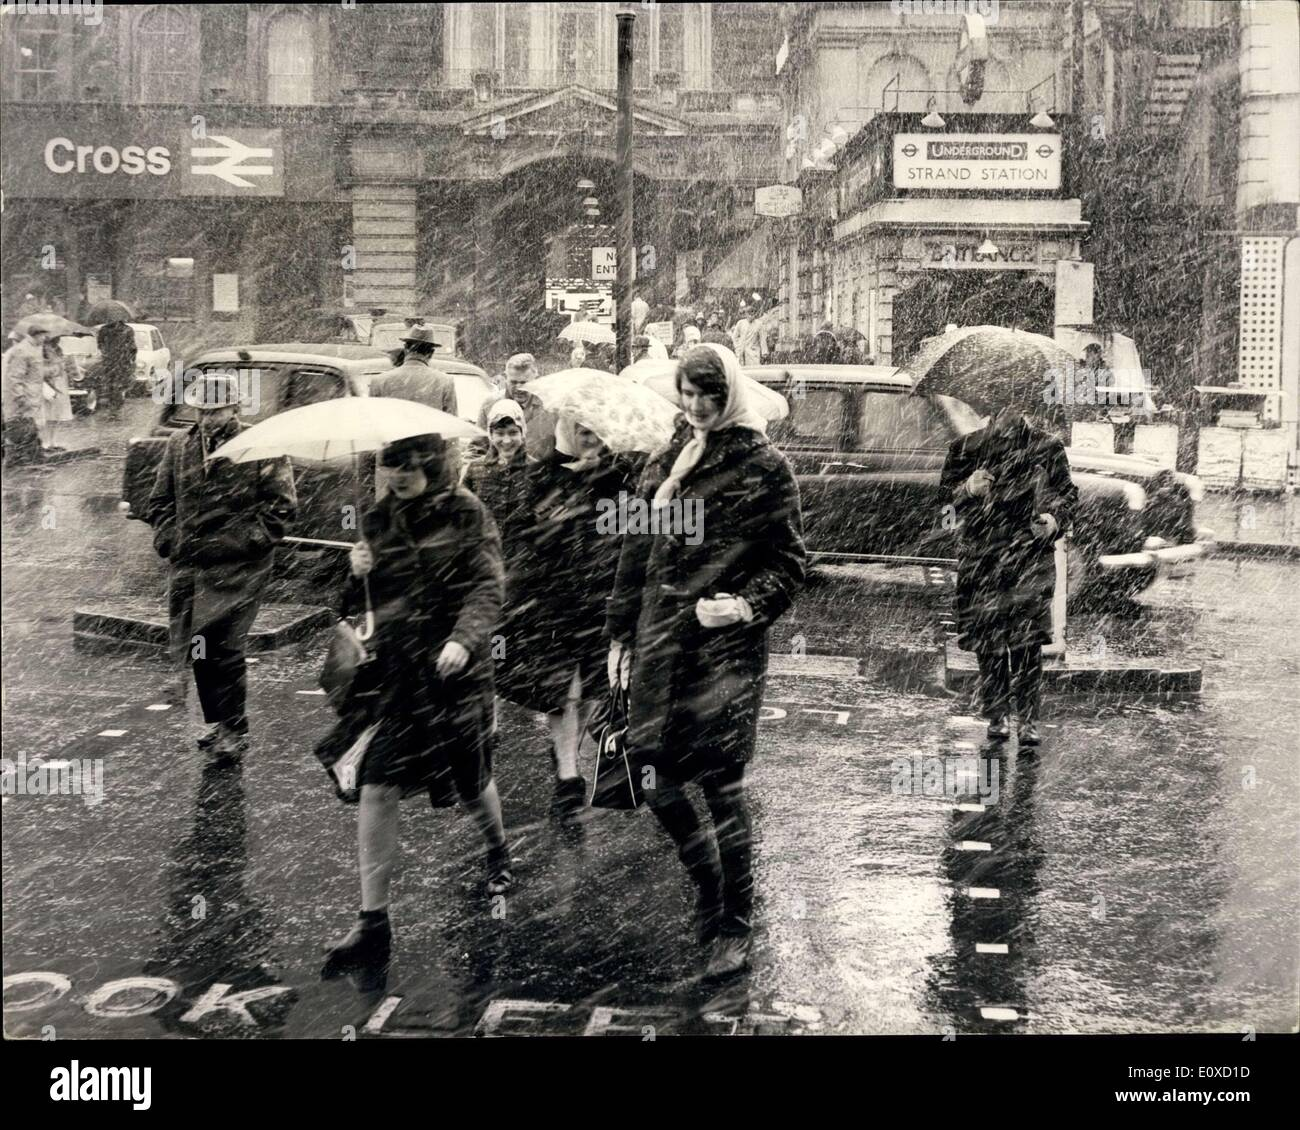 Apr. 14, 1966 - Heavy snow hits London and the South of England: A heavy Snowstorm hit London and South of England Stock Photo